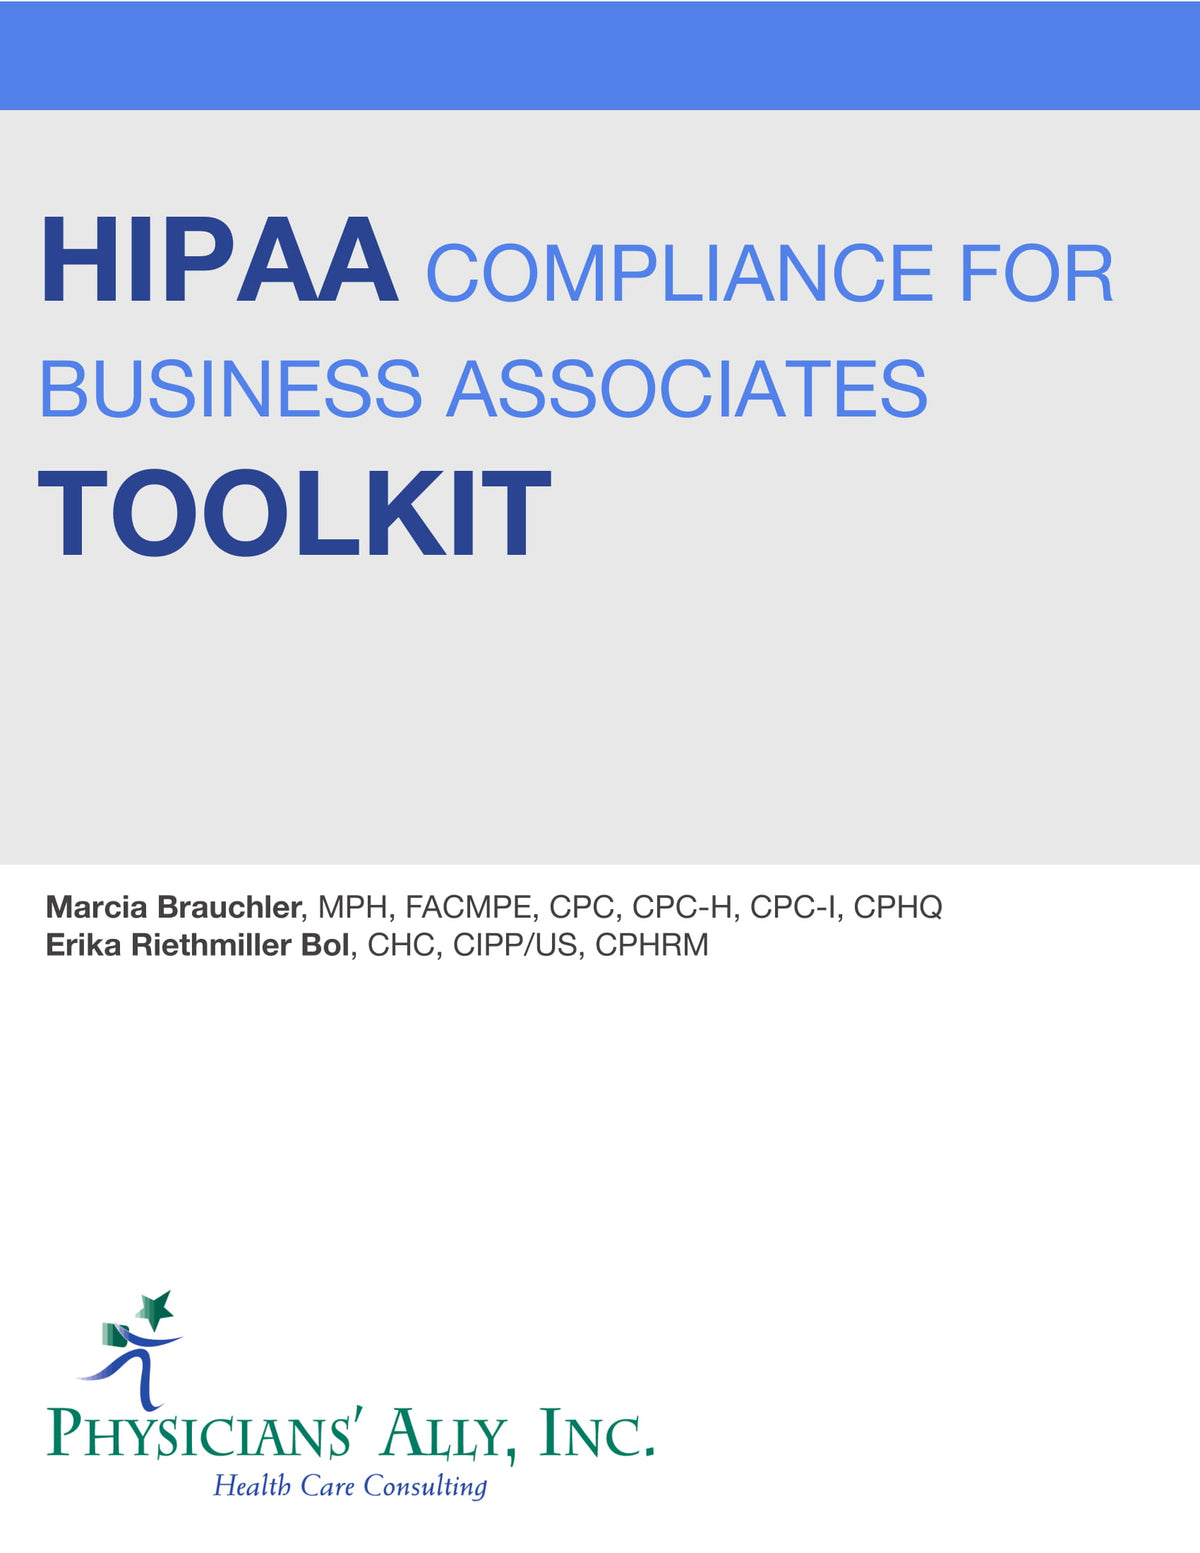 Business Associates HIPAA Compliance Toolkit